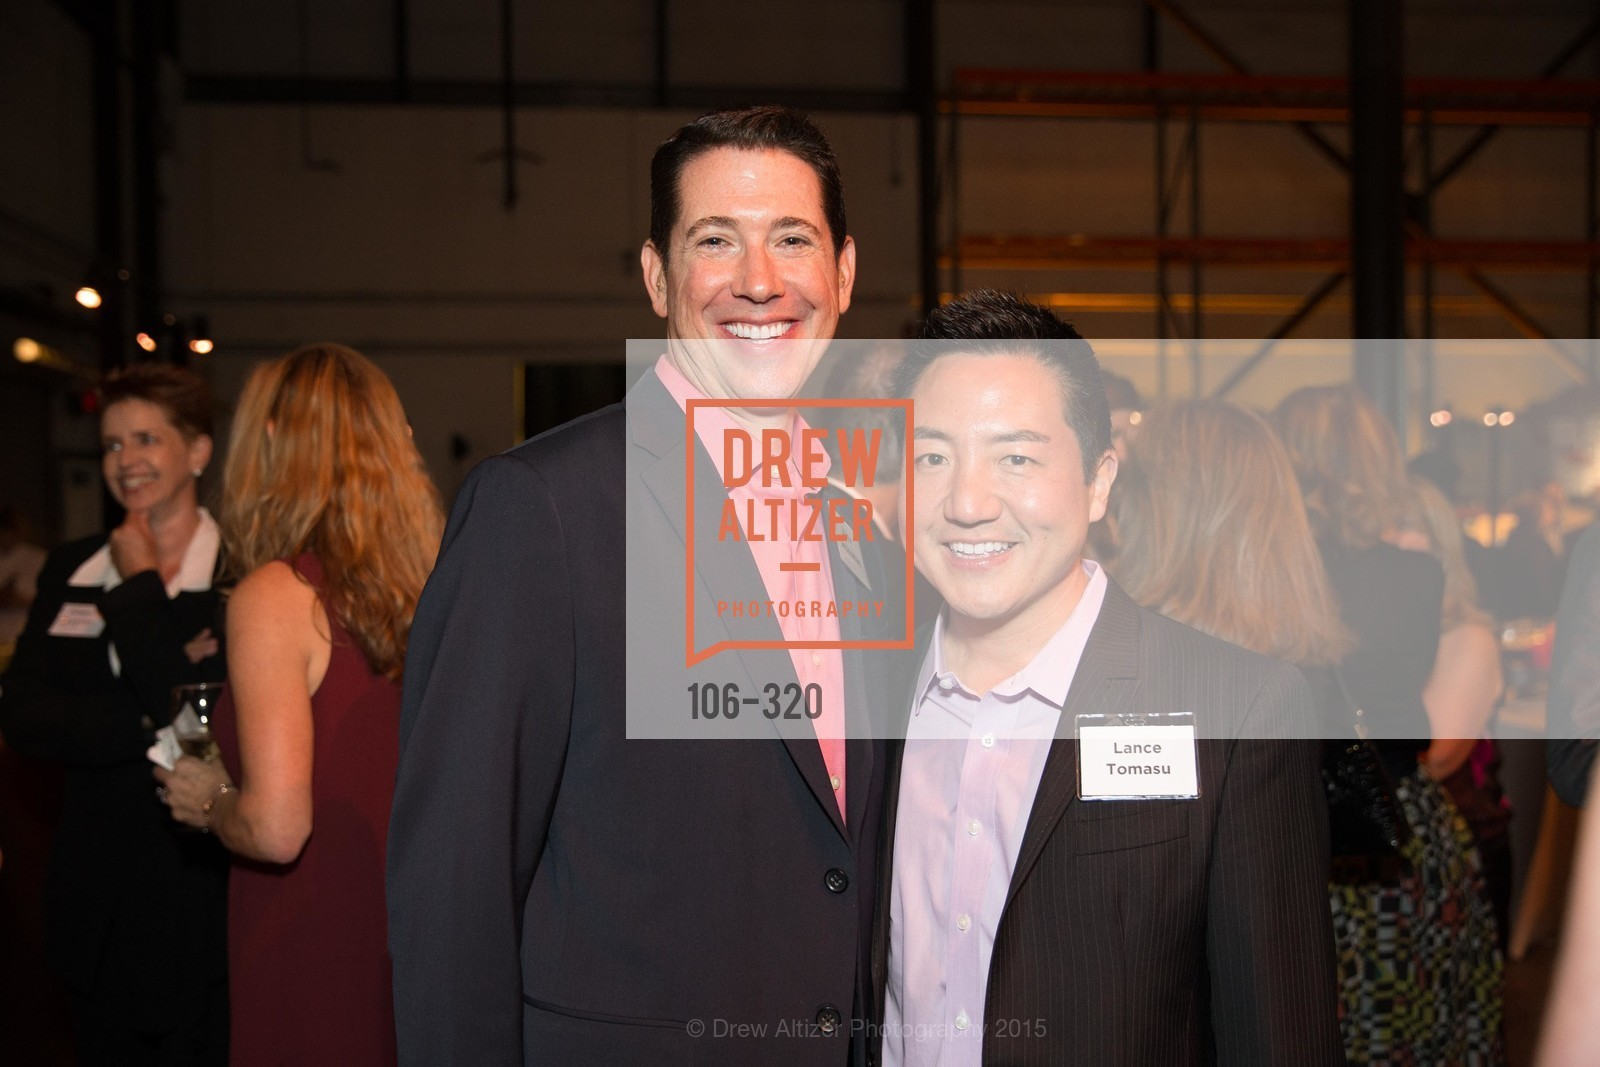 Alex Grossman, Lance Tomasu, SF - Marin Food Bank Presents ONE BIG TABLE, SF- Marin Food Bank. 900 Pennsylvania Ave, September 26th, 2015,Drew Altizer, Drew Altizer Photography, full-service agency, private events, San Francisco photographer, photographer california